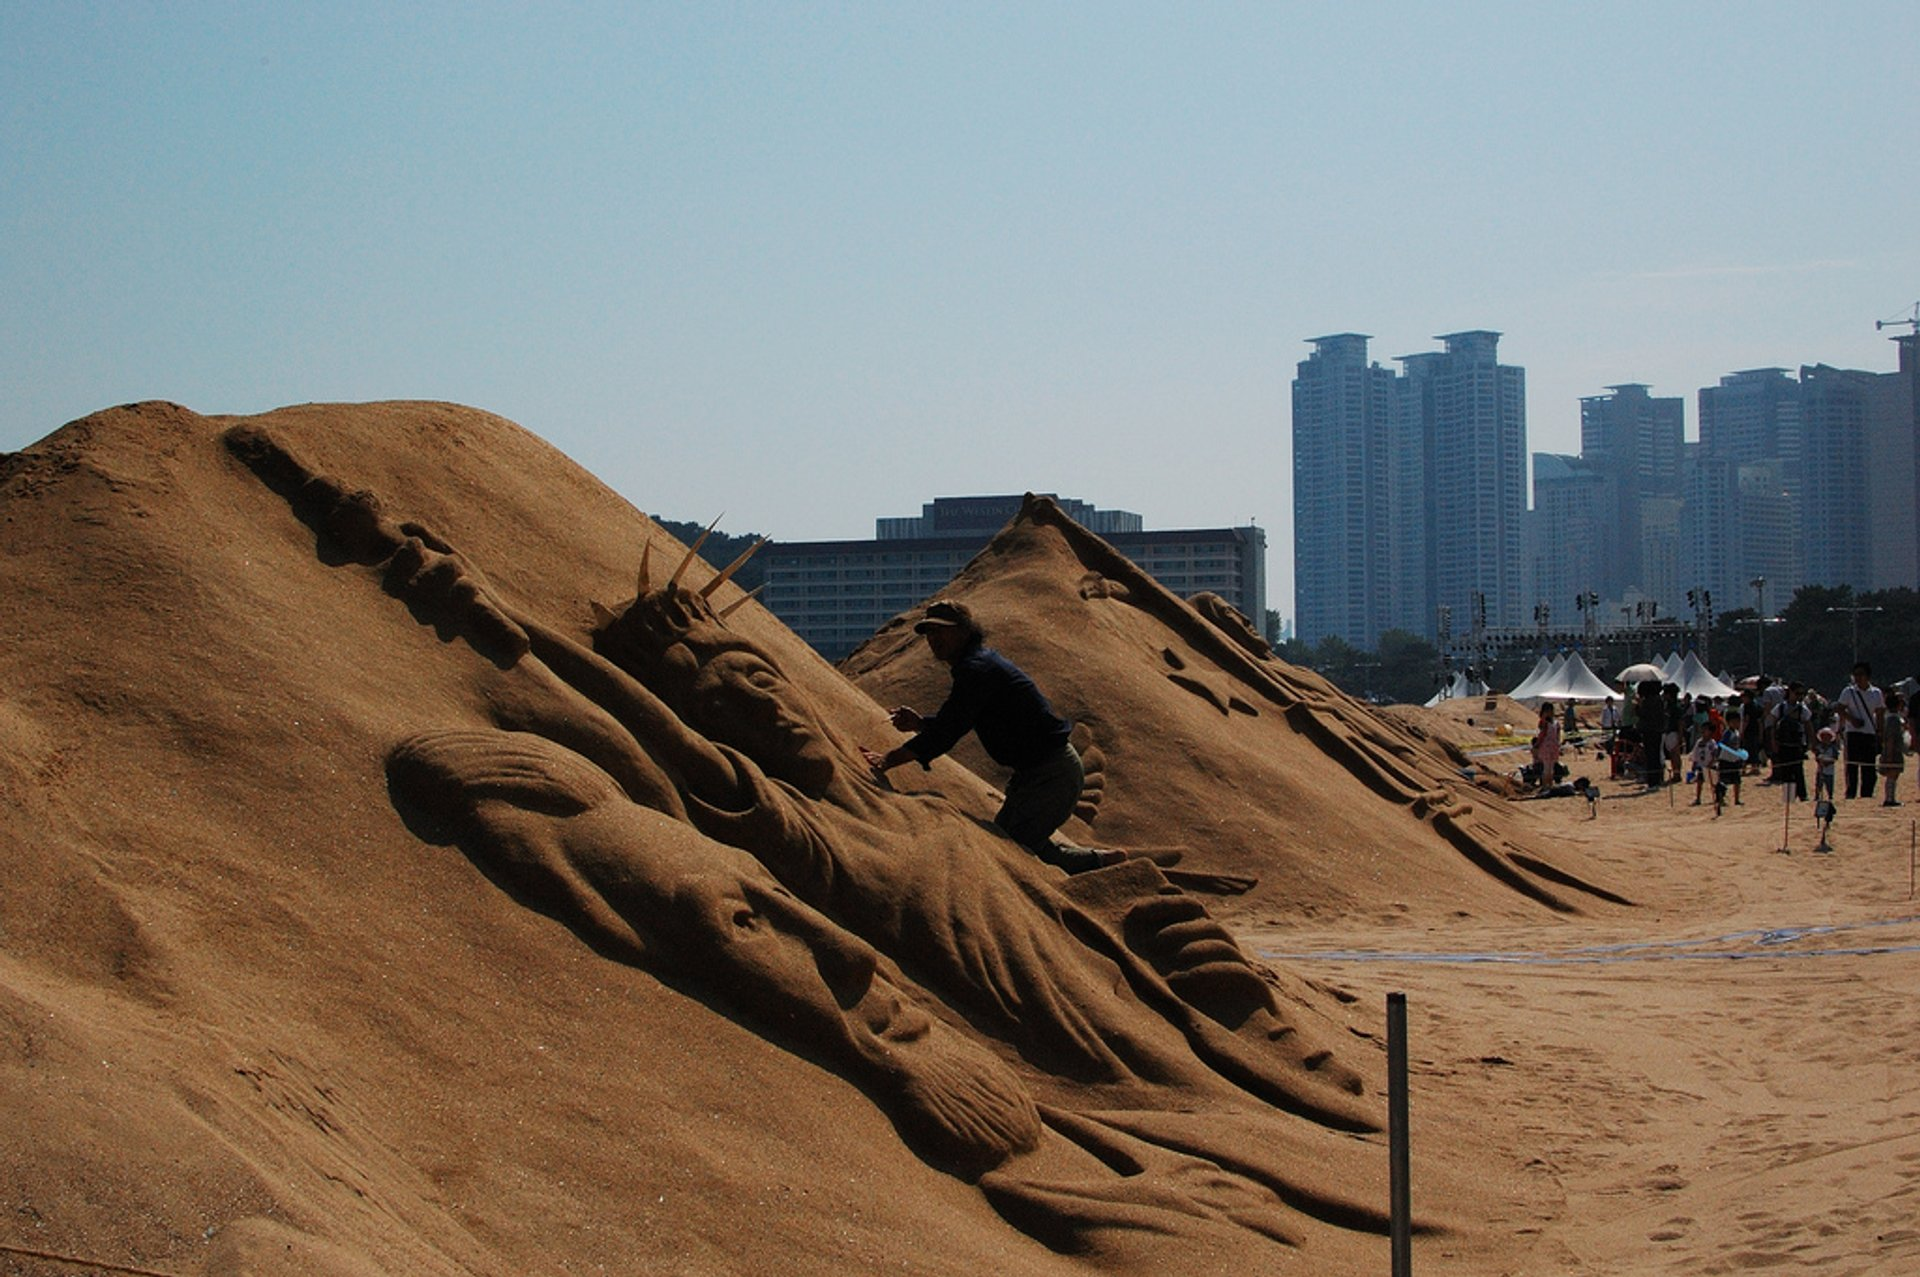 Haeundae Sand Festival in South Korea - Best Season 2020